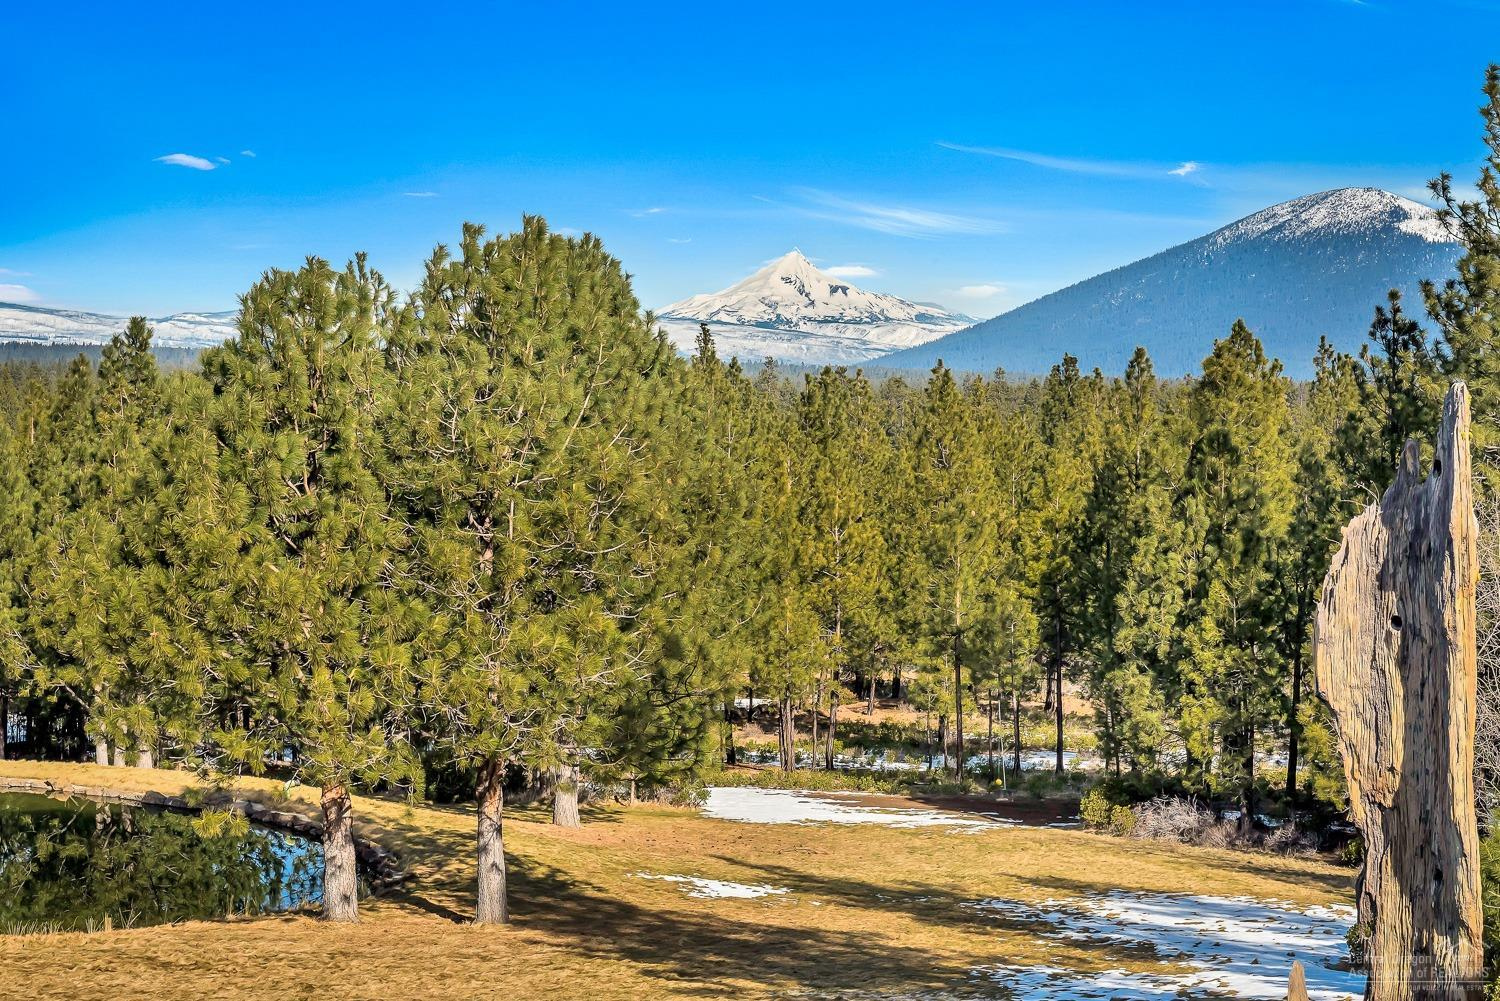 A bucolic Central Oregon landscape awaits as this